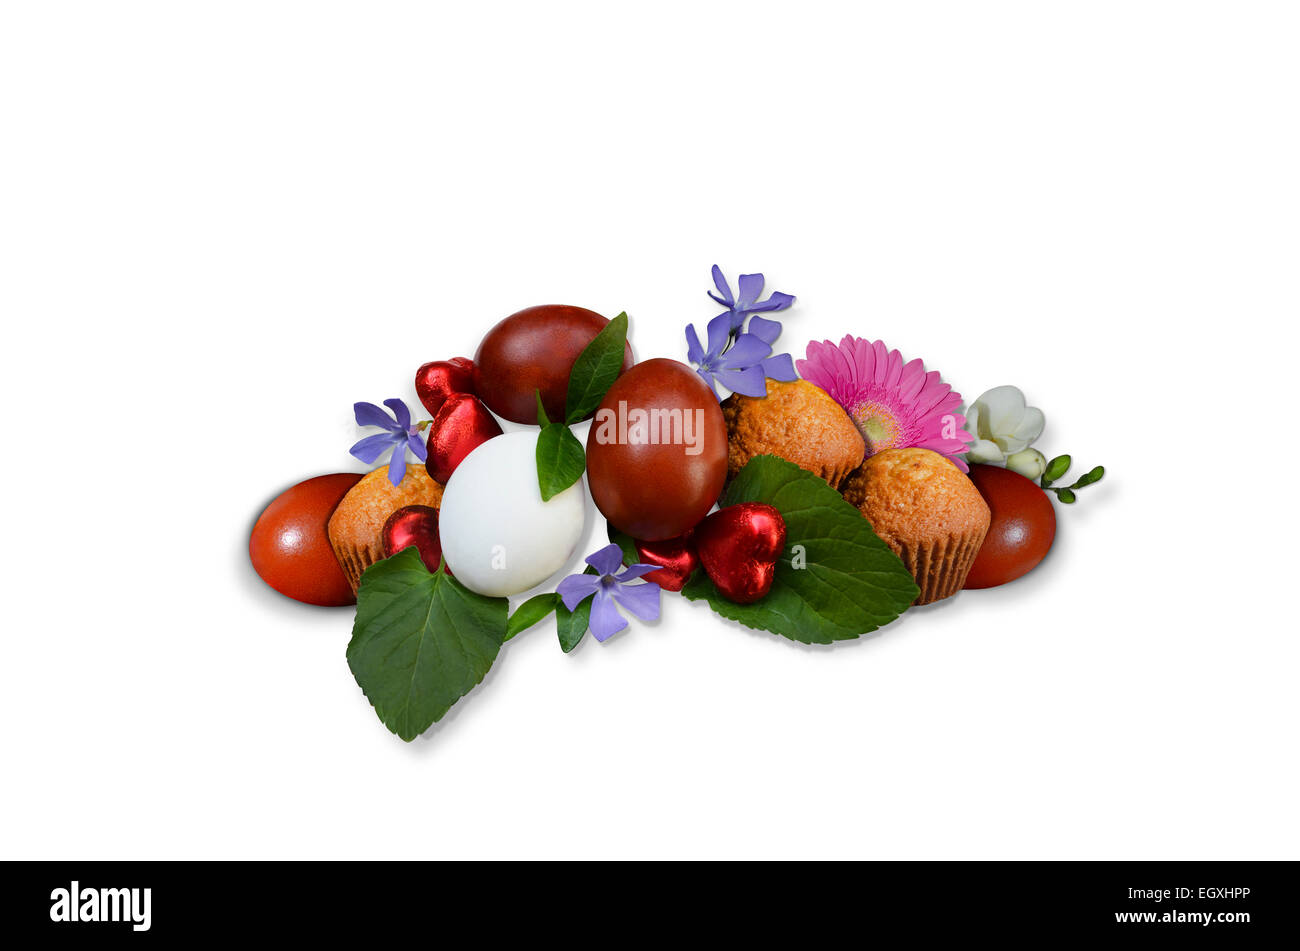 Easter eggs with pastries and flowers on a white background - Stock Image